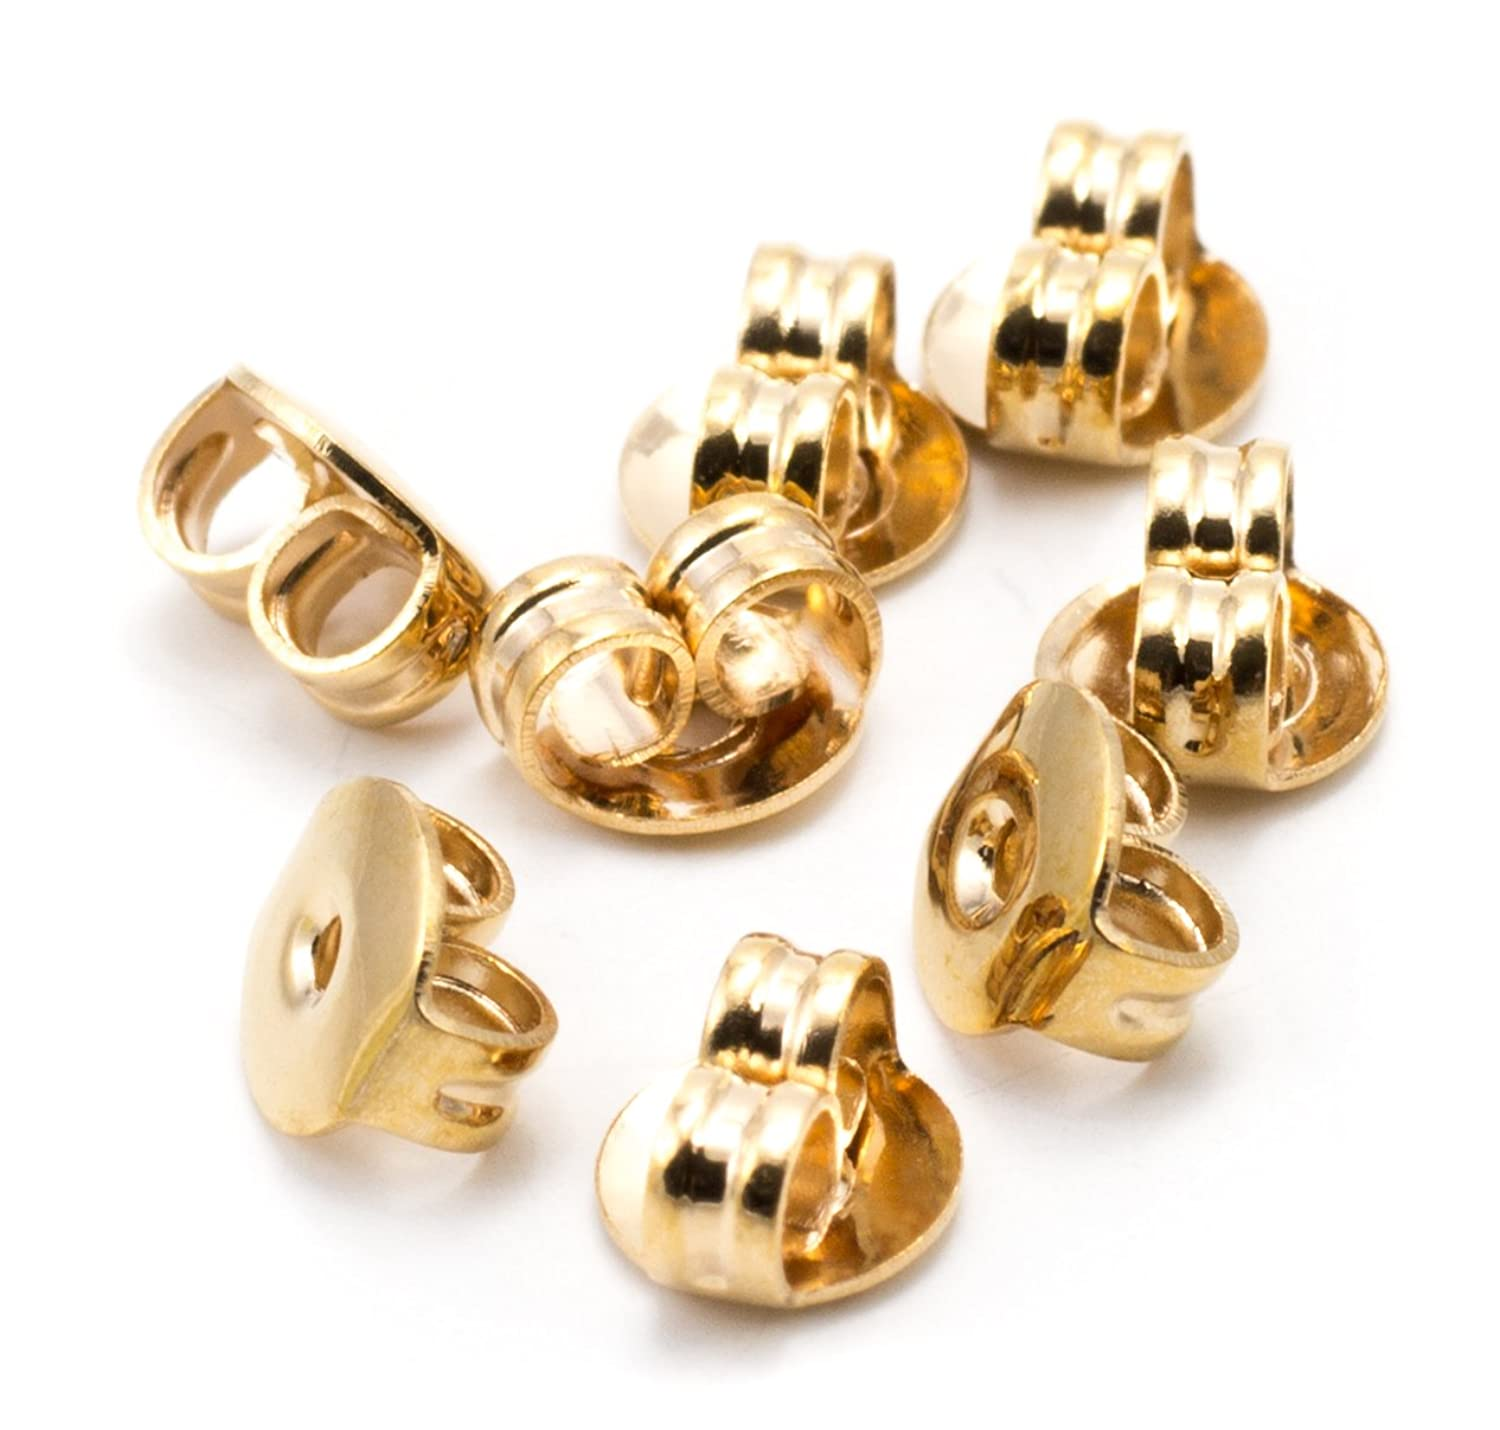 Cousin DIY 5mm Plated Rose Gold Earring Nut - 8pc ymrkff3501224